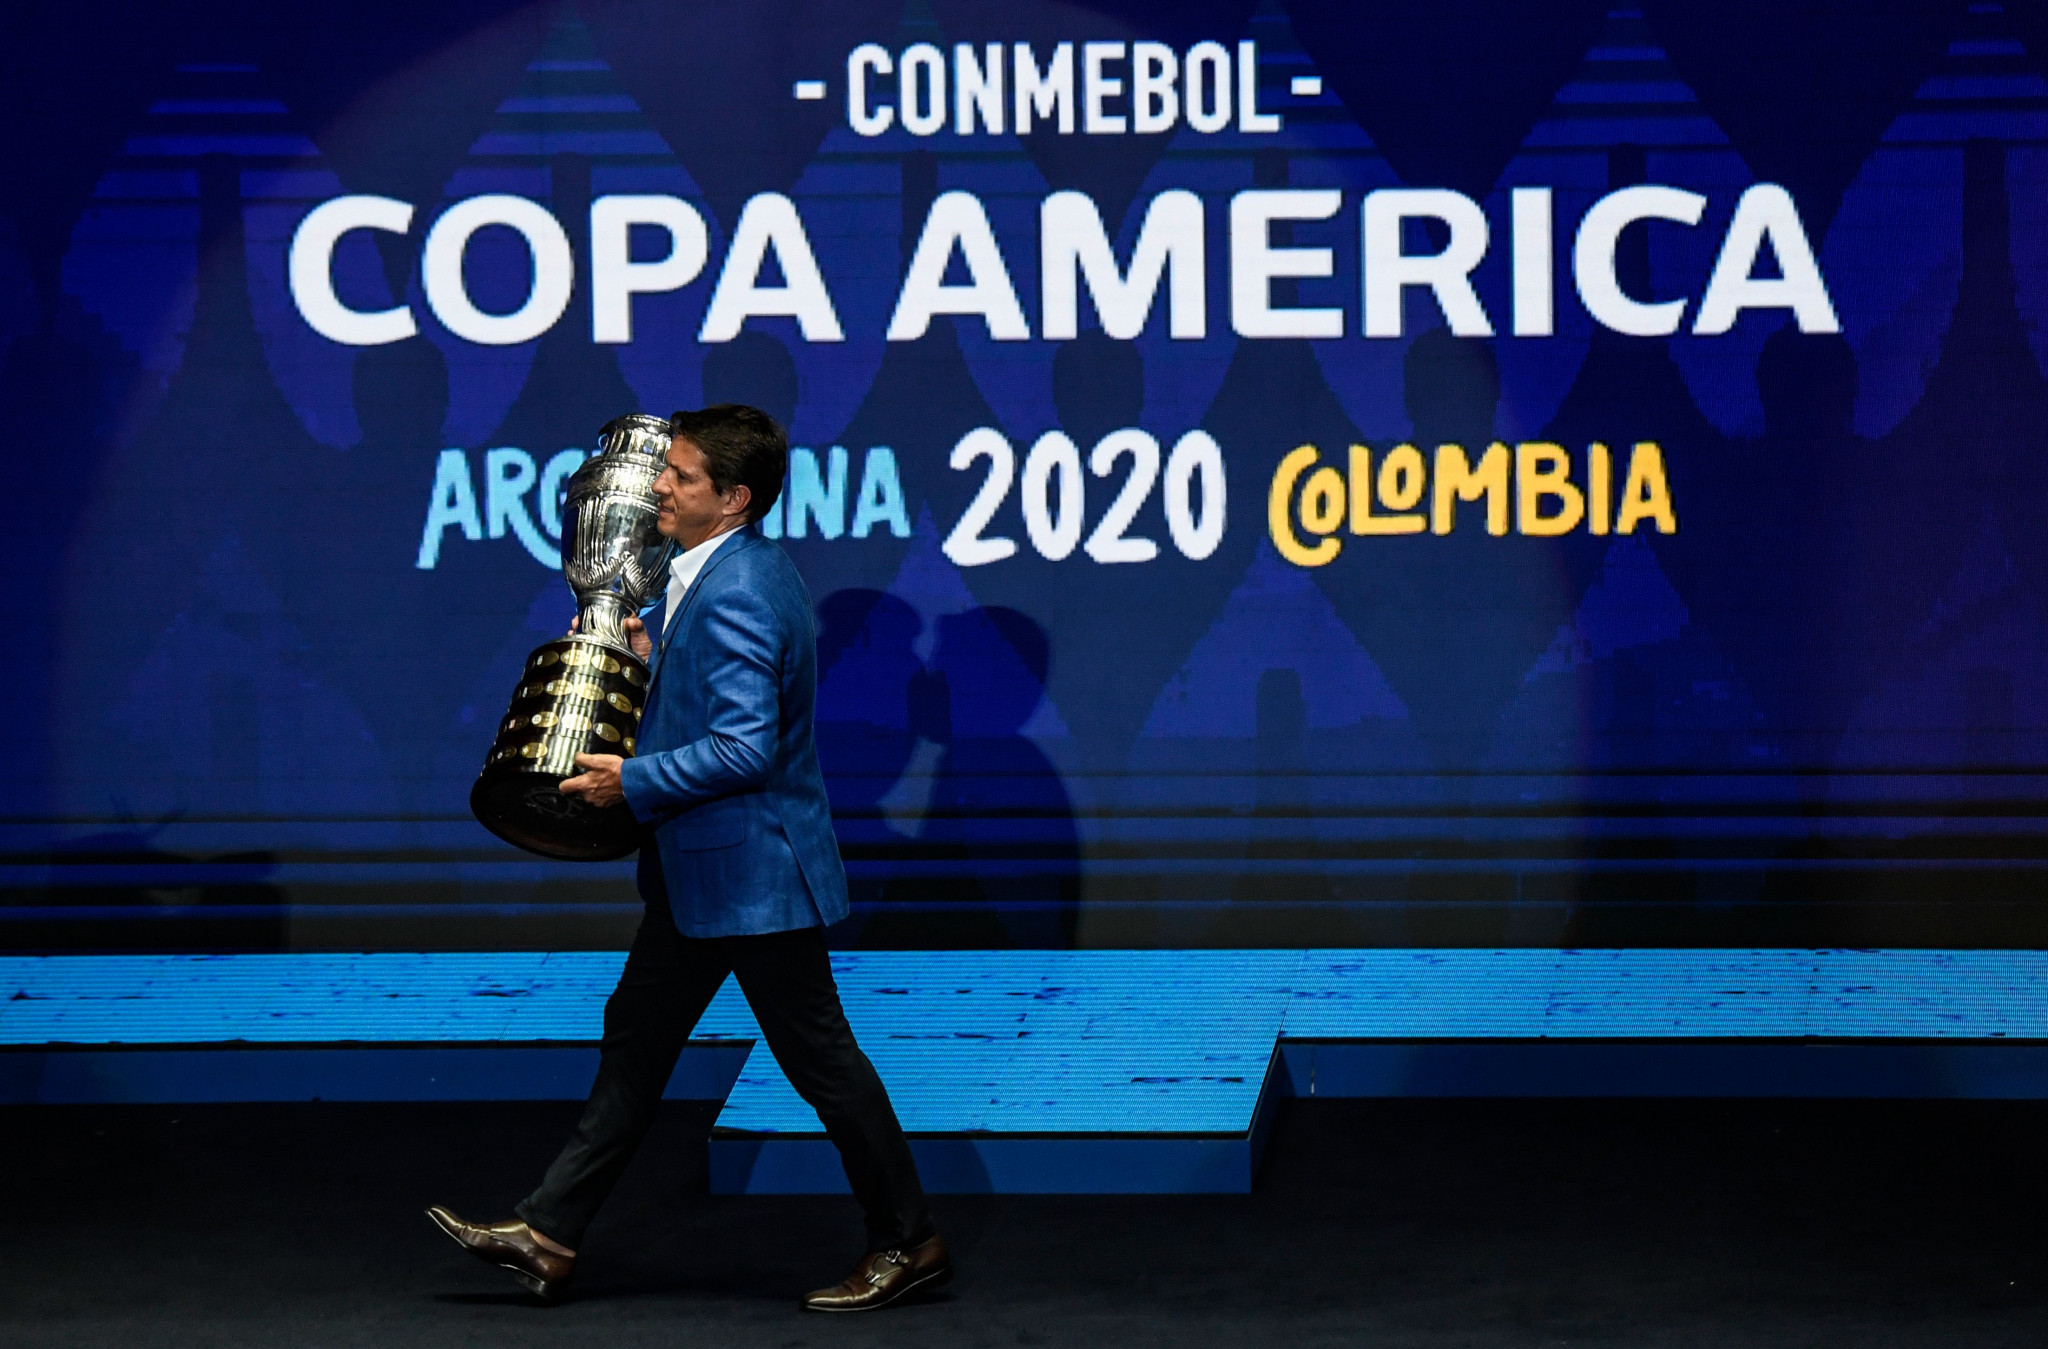 Organisers want 30 per cent capacity crowds at 2021 Copa América